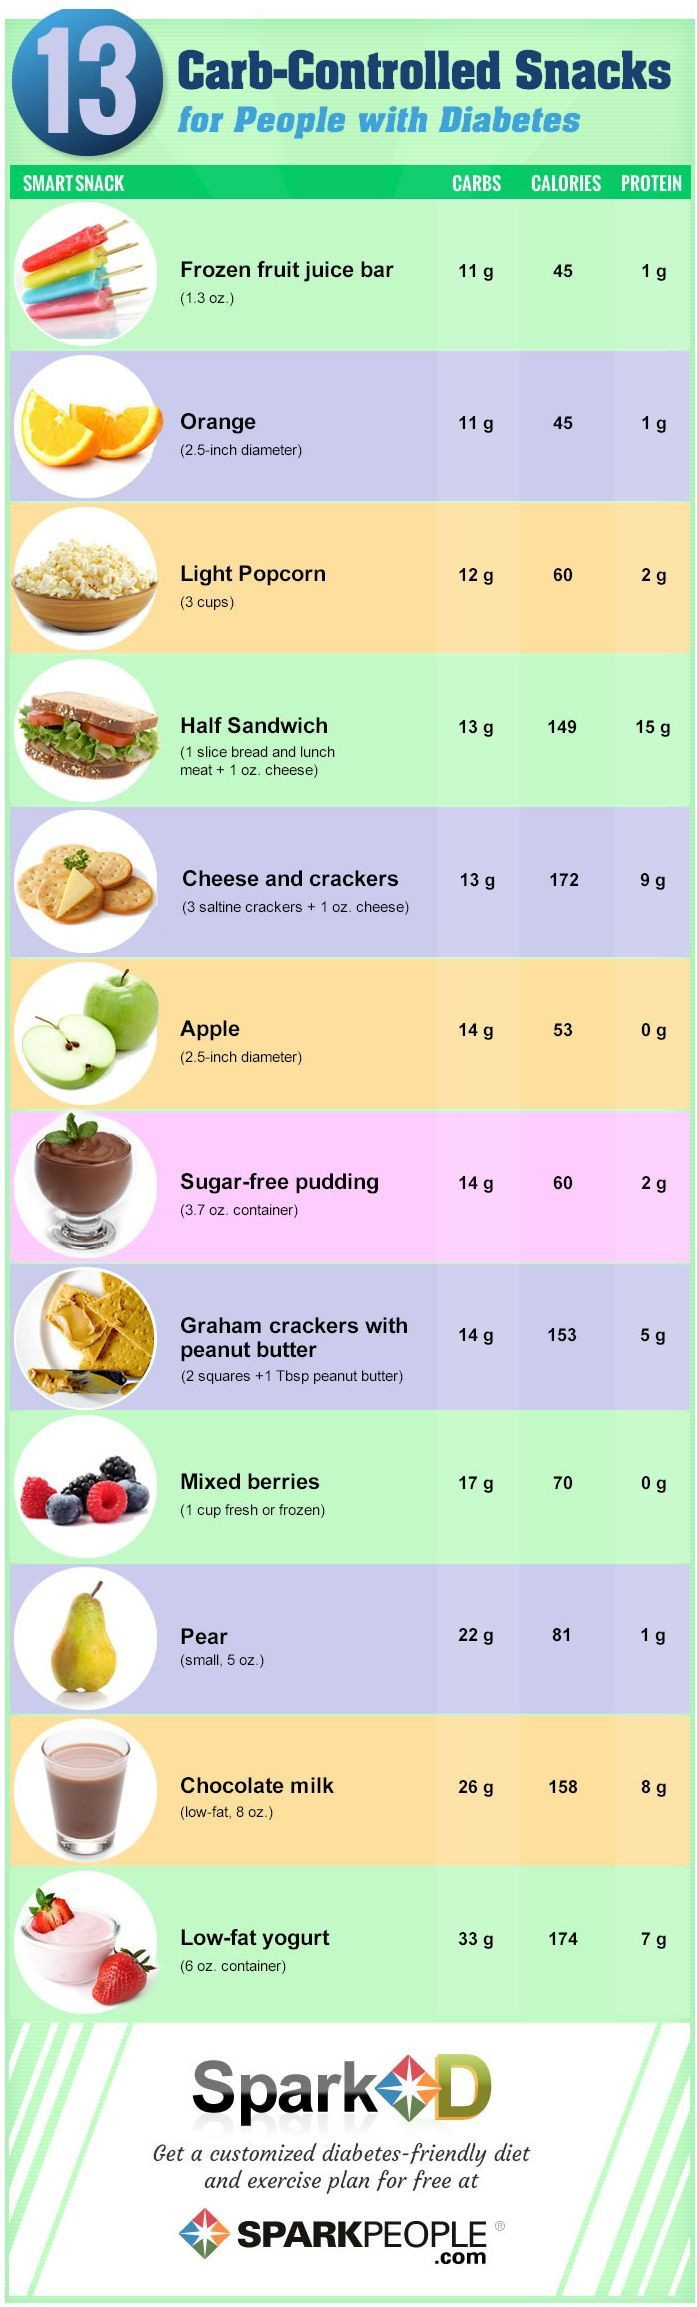 List Of Healthy Snacks For Diabetics  13 Carb Controlled Snacks